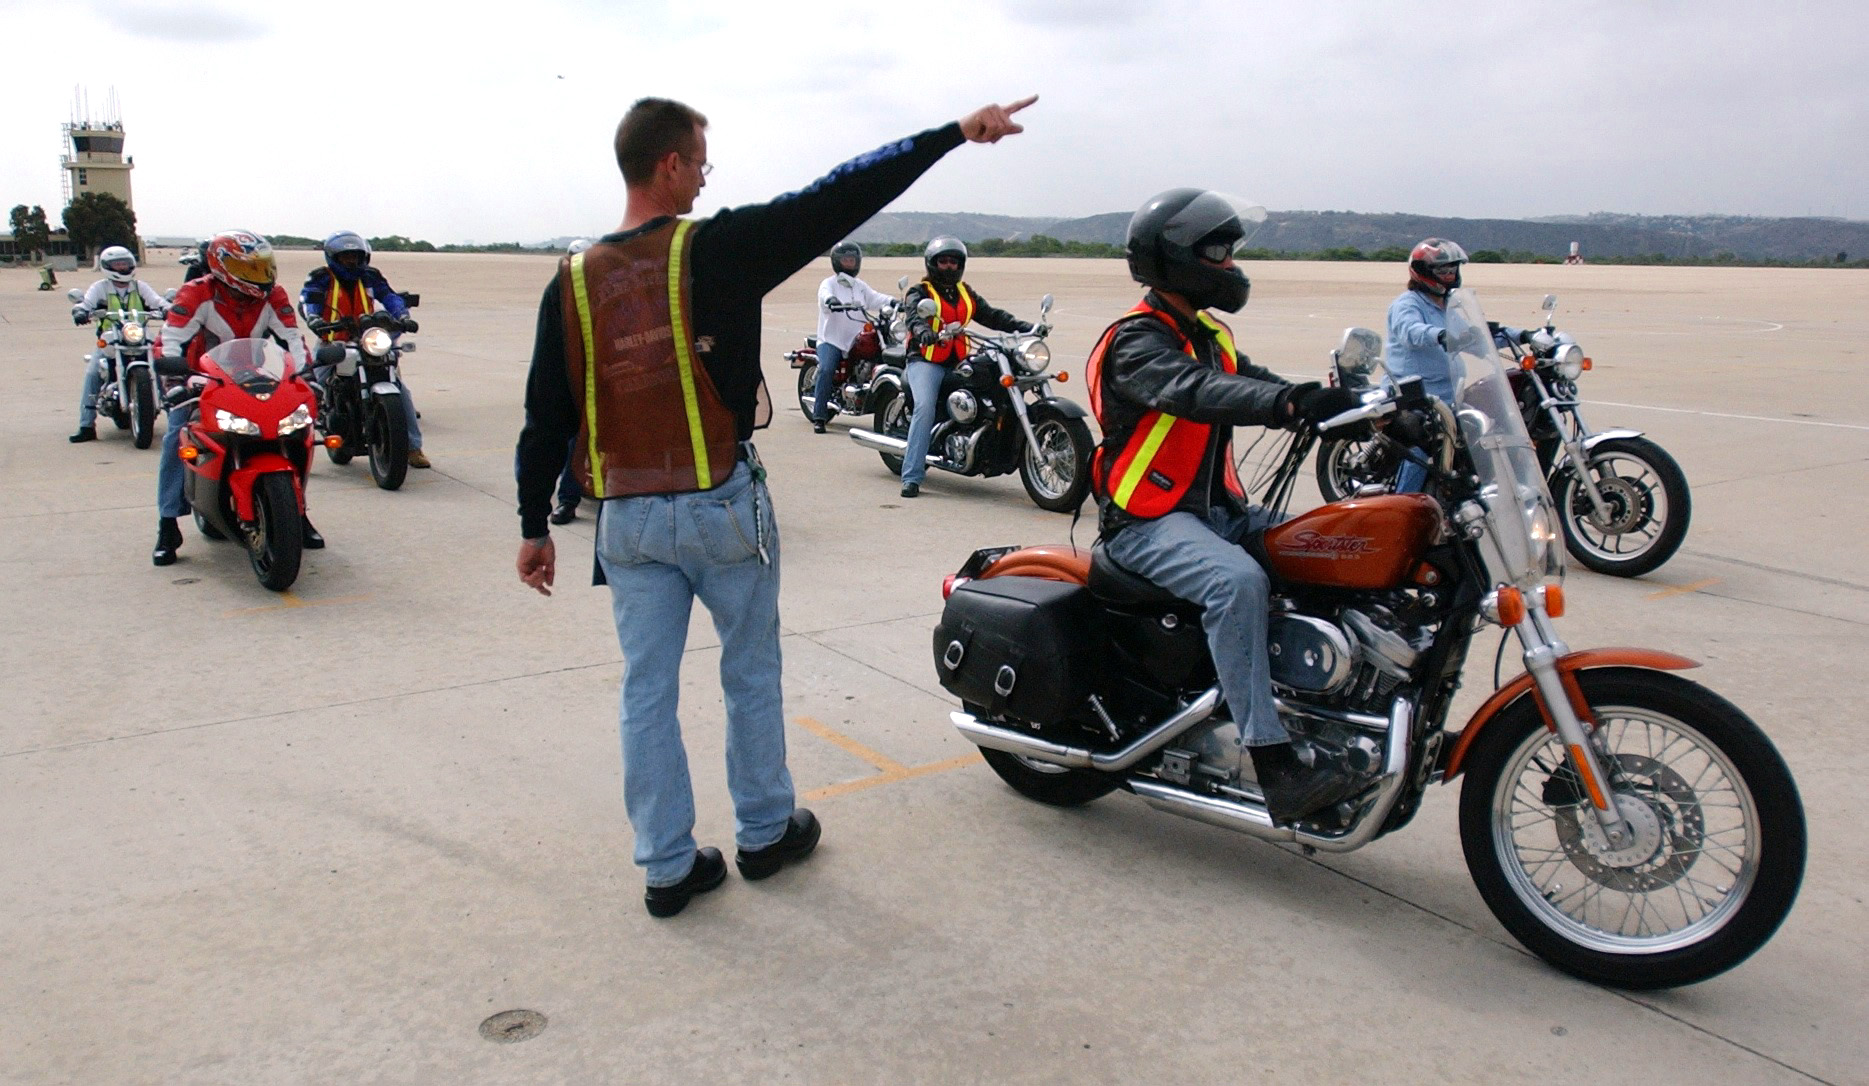 ride a motorcycle and be safe Sometimes, the adventure is yours alone here are some tips for solo motorcycle touring that will help ensure you have a safe and enjoyable solo ride.